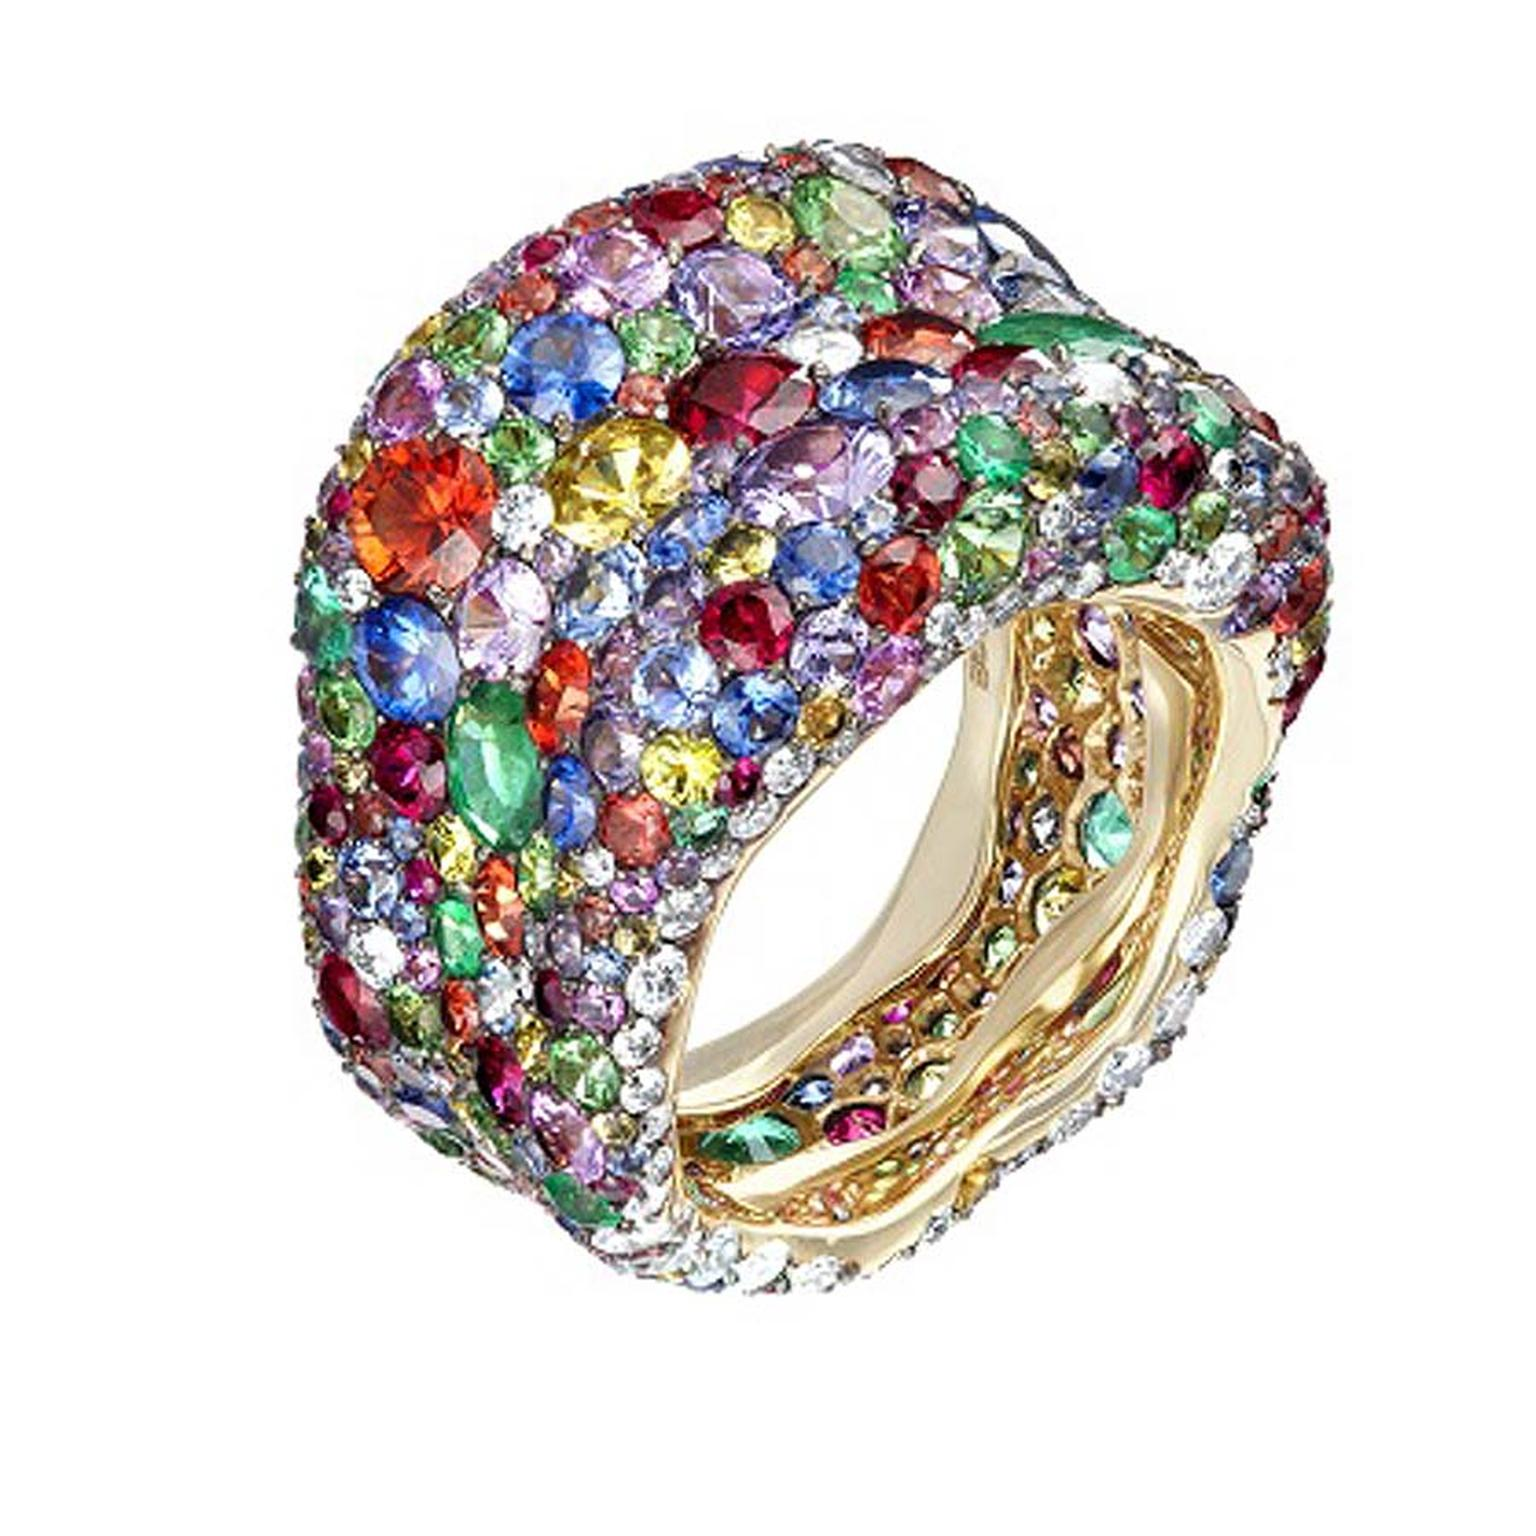 FabergeEmotionrings002